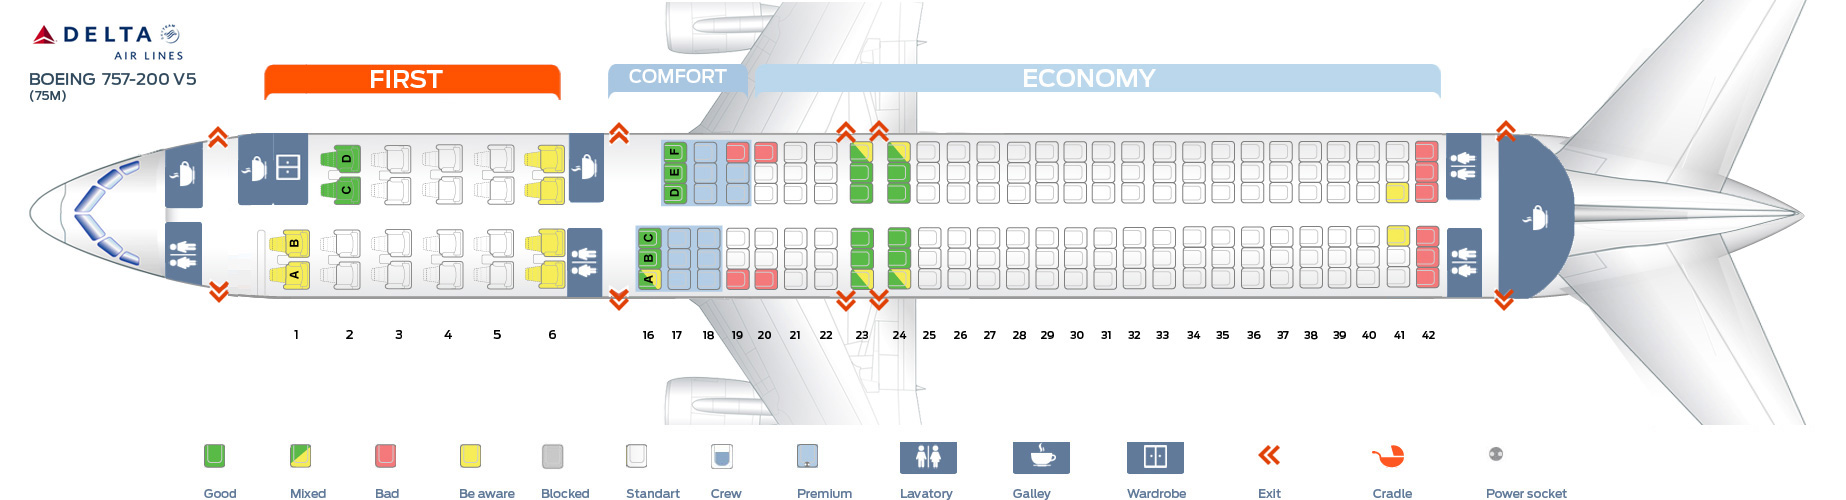 Seat_map_Delta_Airlines_Boeing_757-200_75M_v5